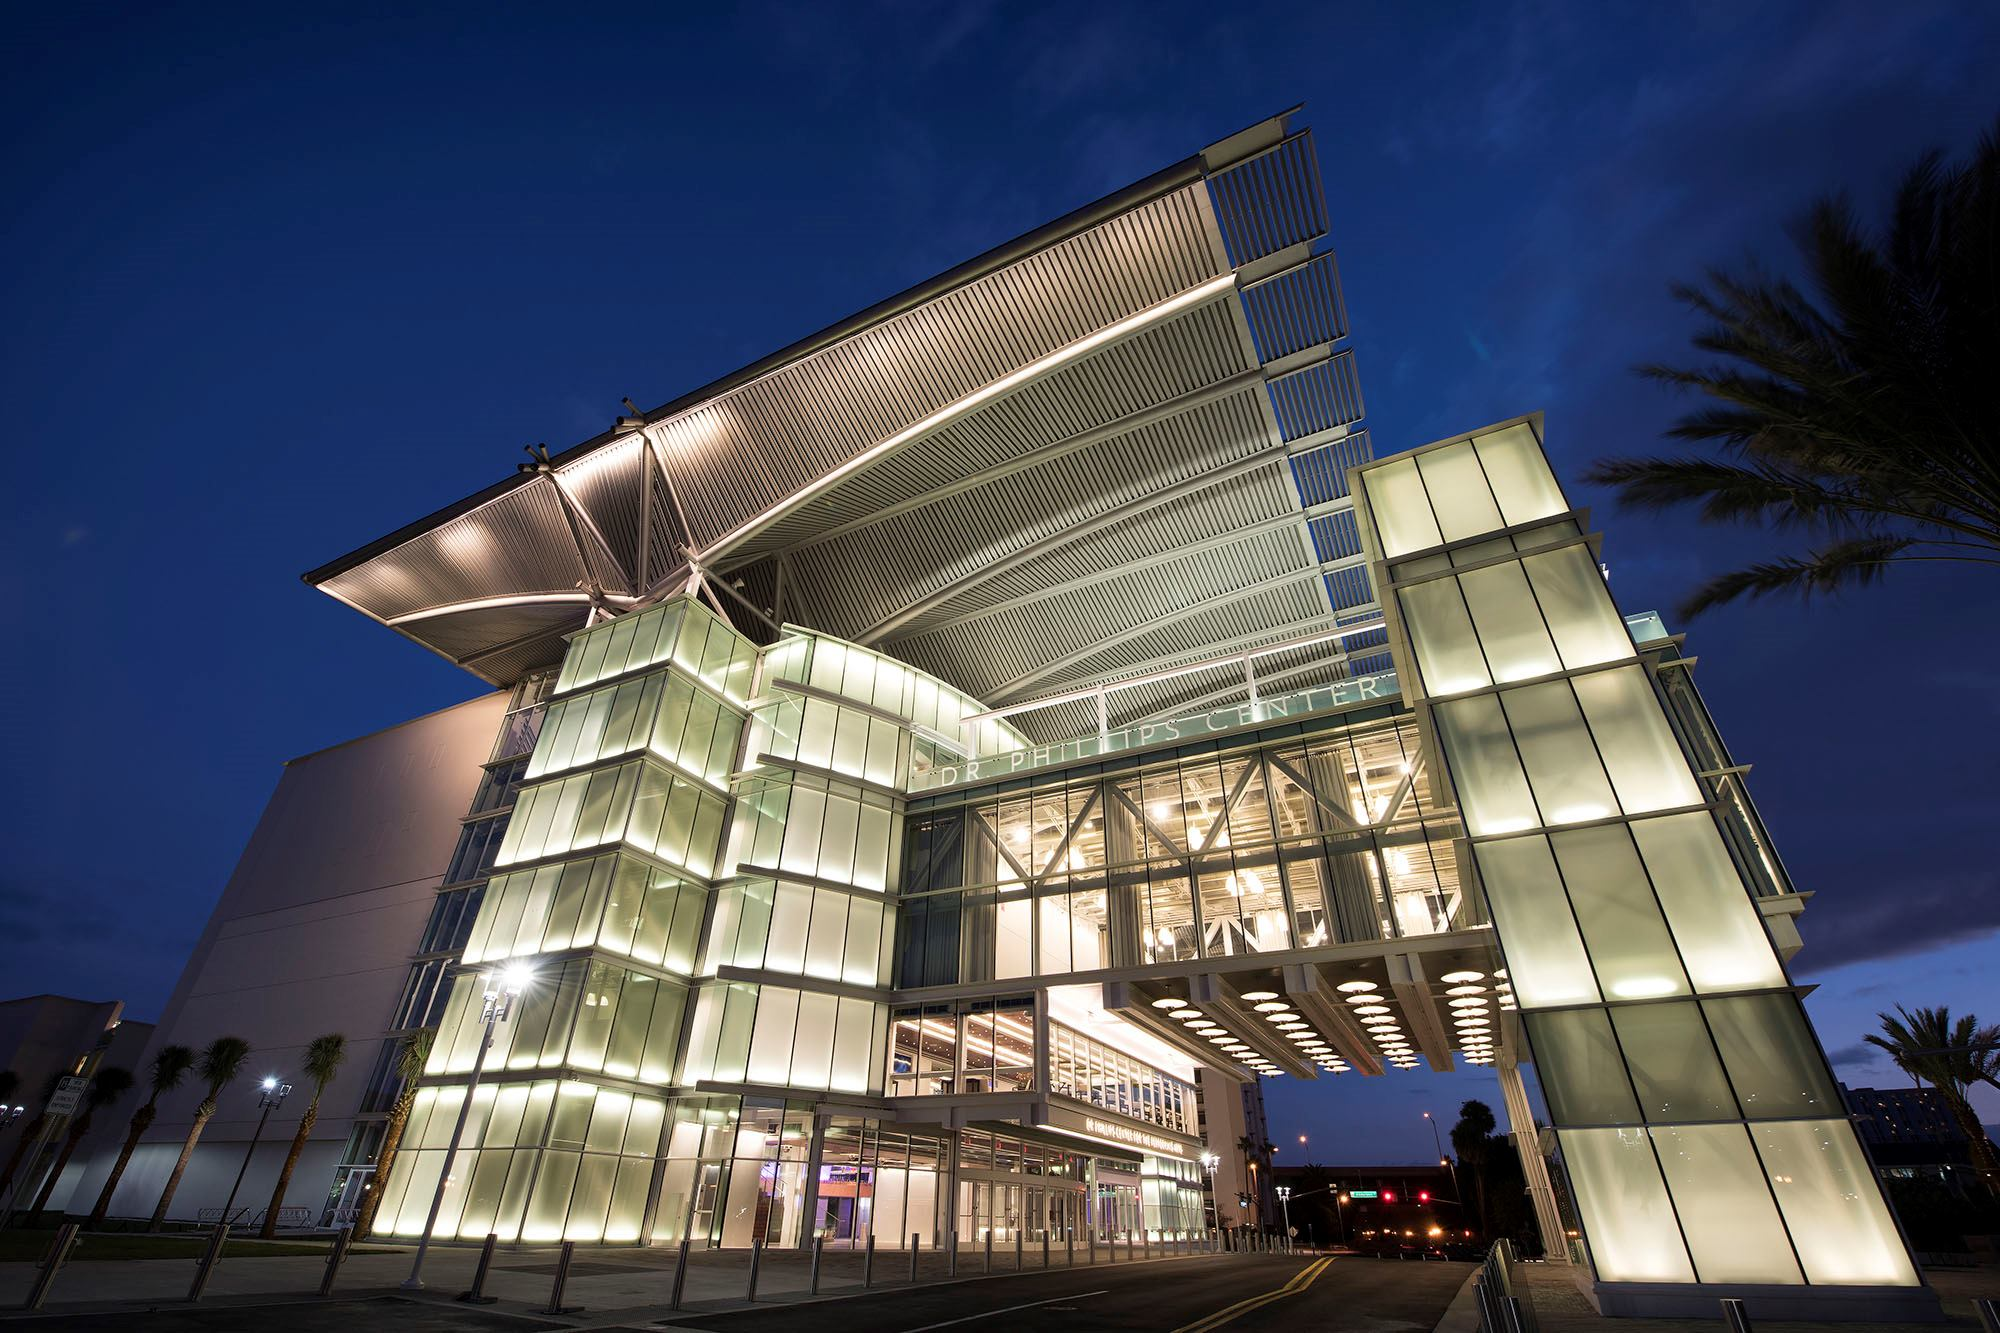 Dr phillips center for the performing arts opens in for Architecture art